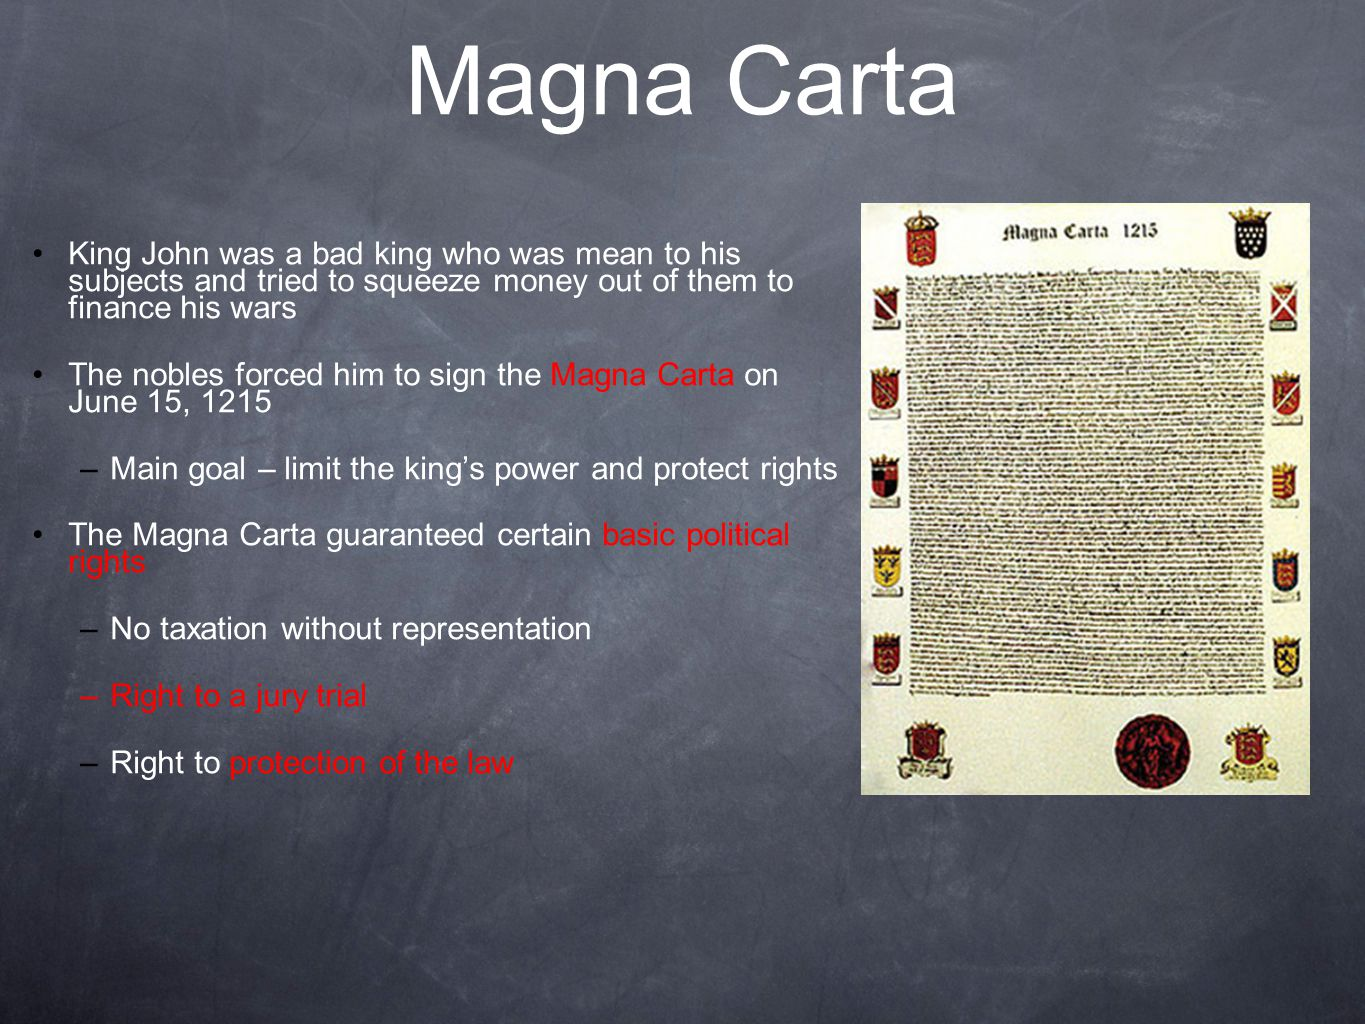 Magna Carta King John was a bad king who was mean to his subjects and tried to squeeze money out of them to finance his wars.